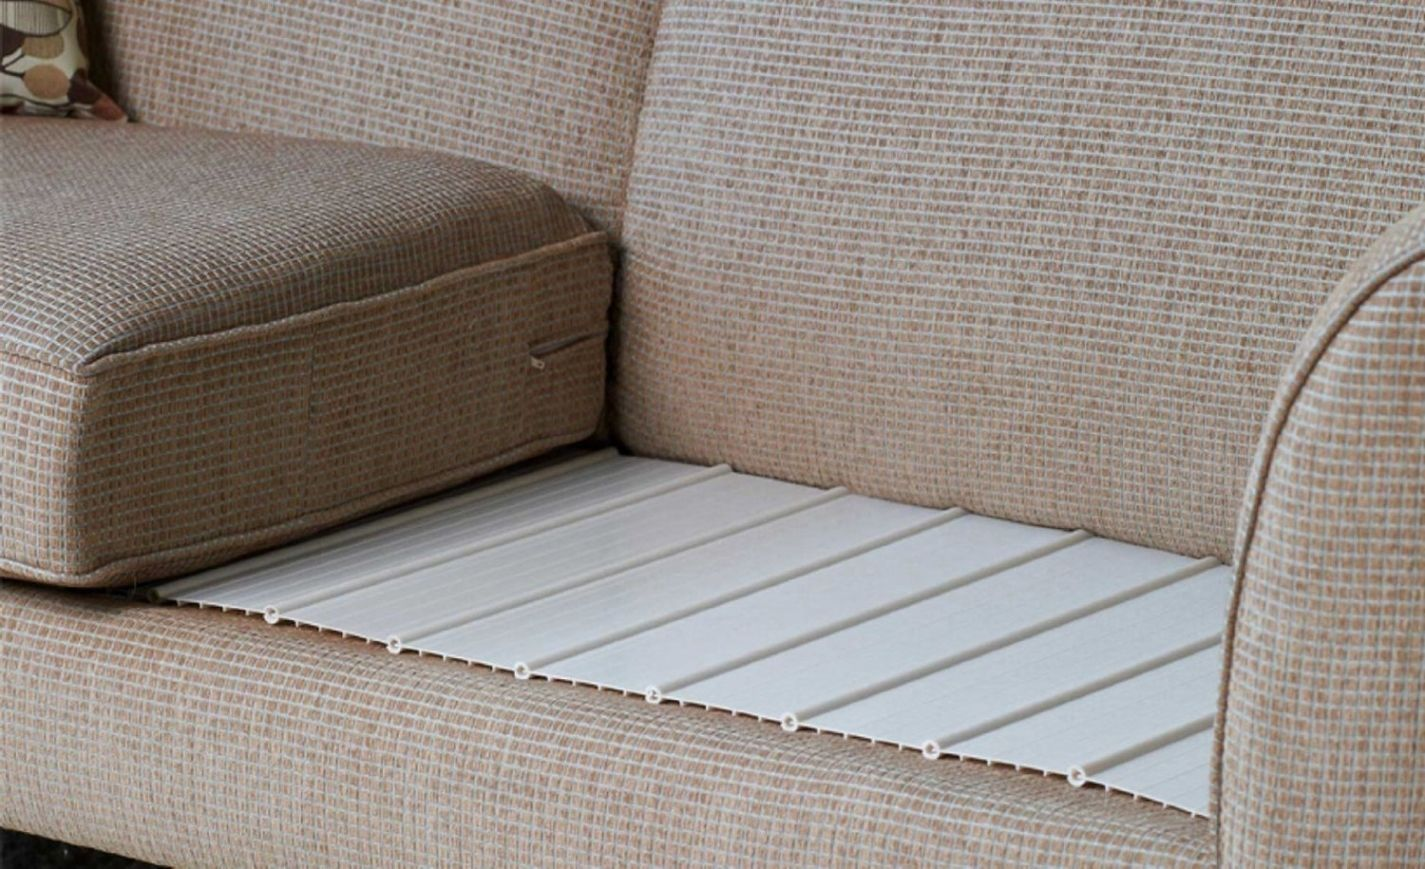 inspirational sofa saver boards model-Best sofa Saver Boards Plan